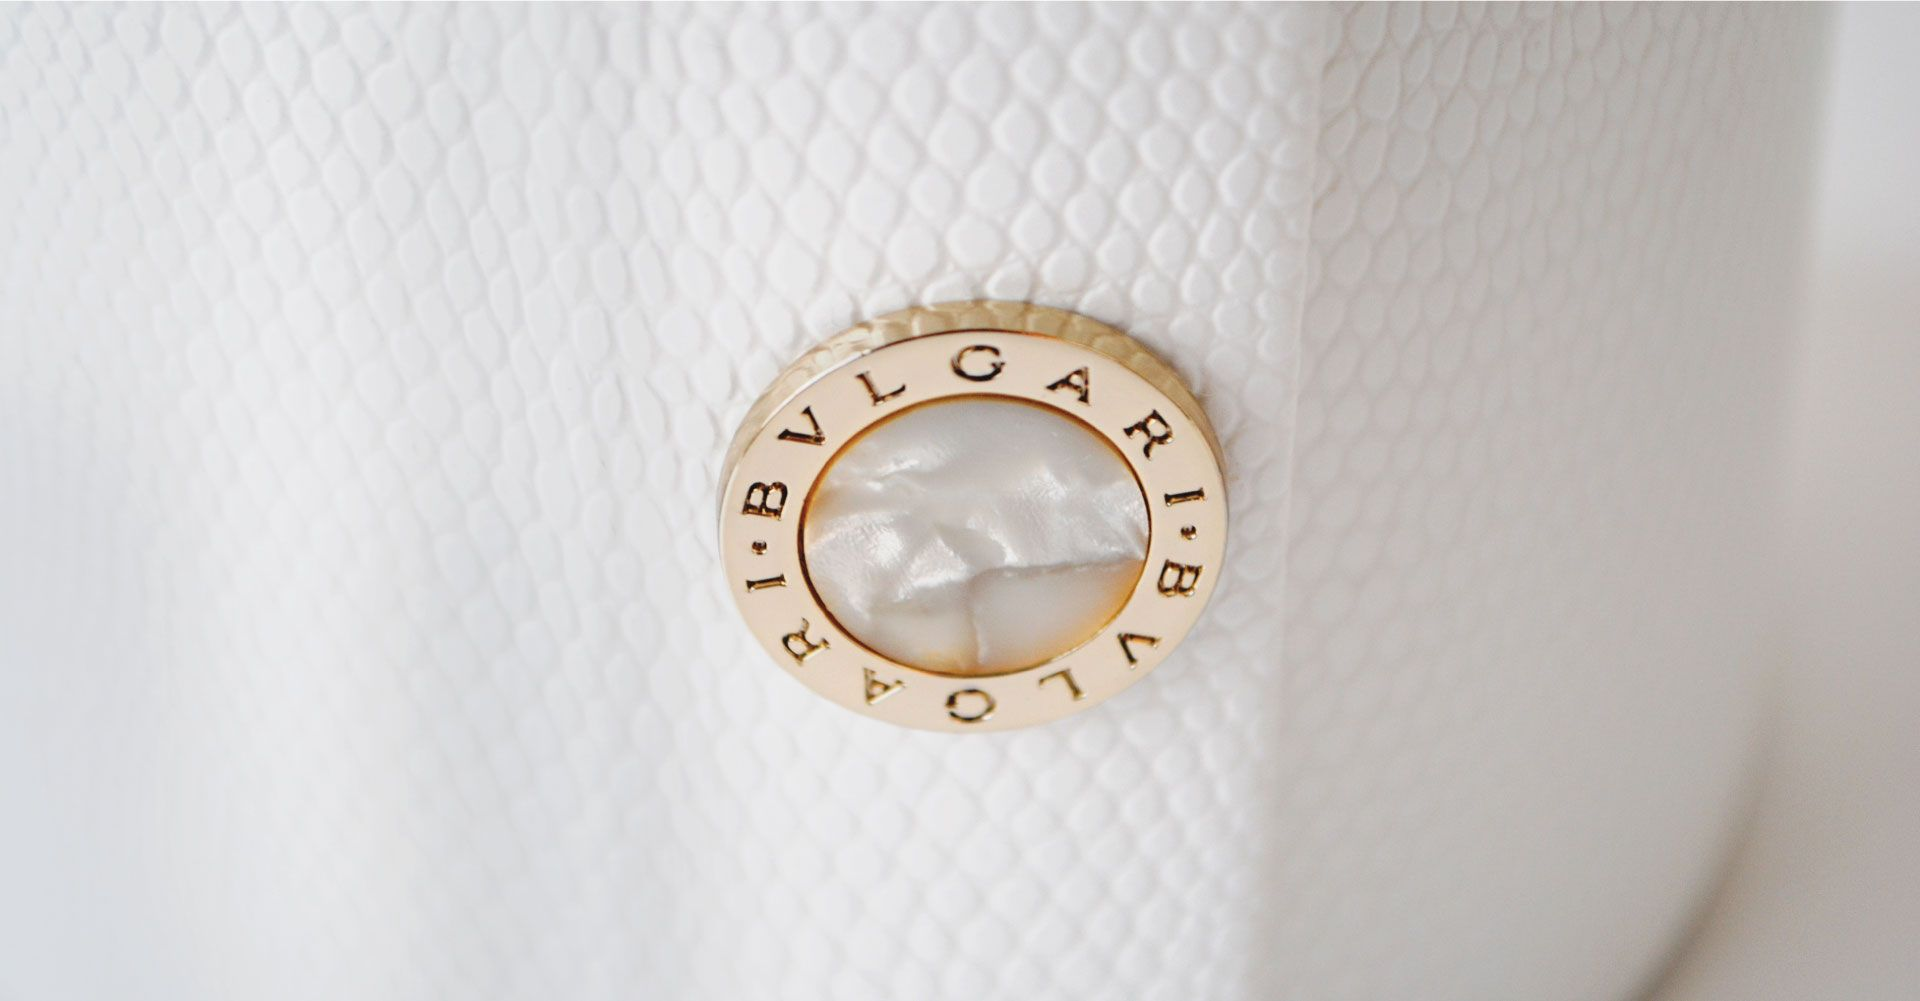 Bvlgari jewelry box clasp detail jewelry packaging pinterest